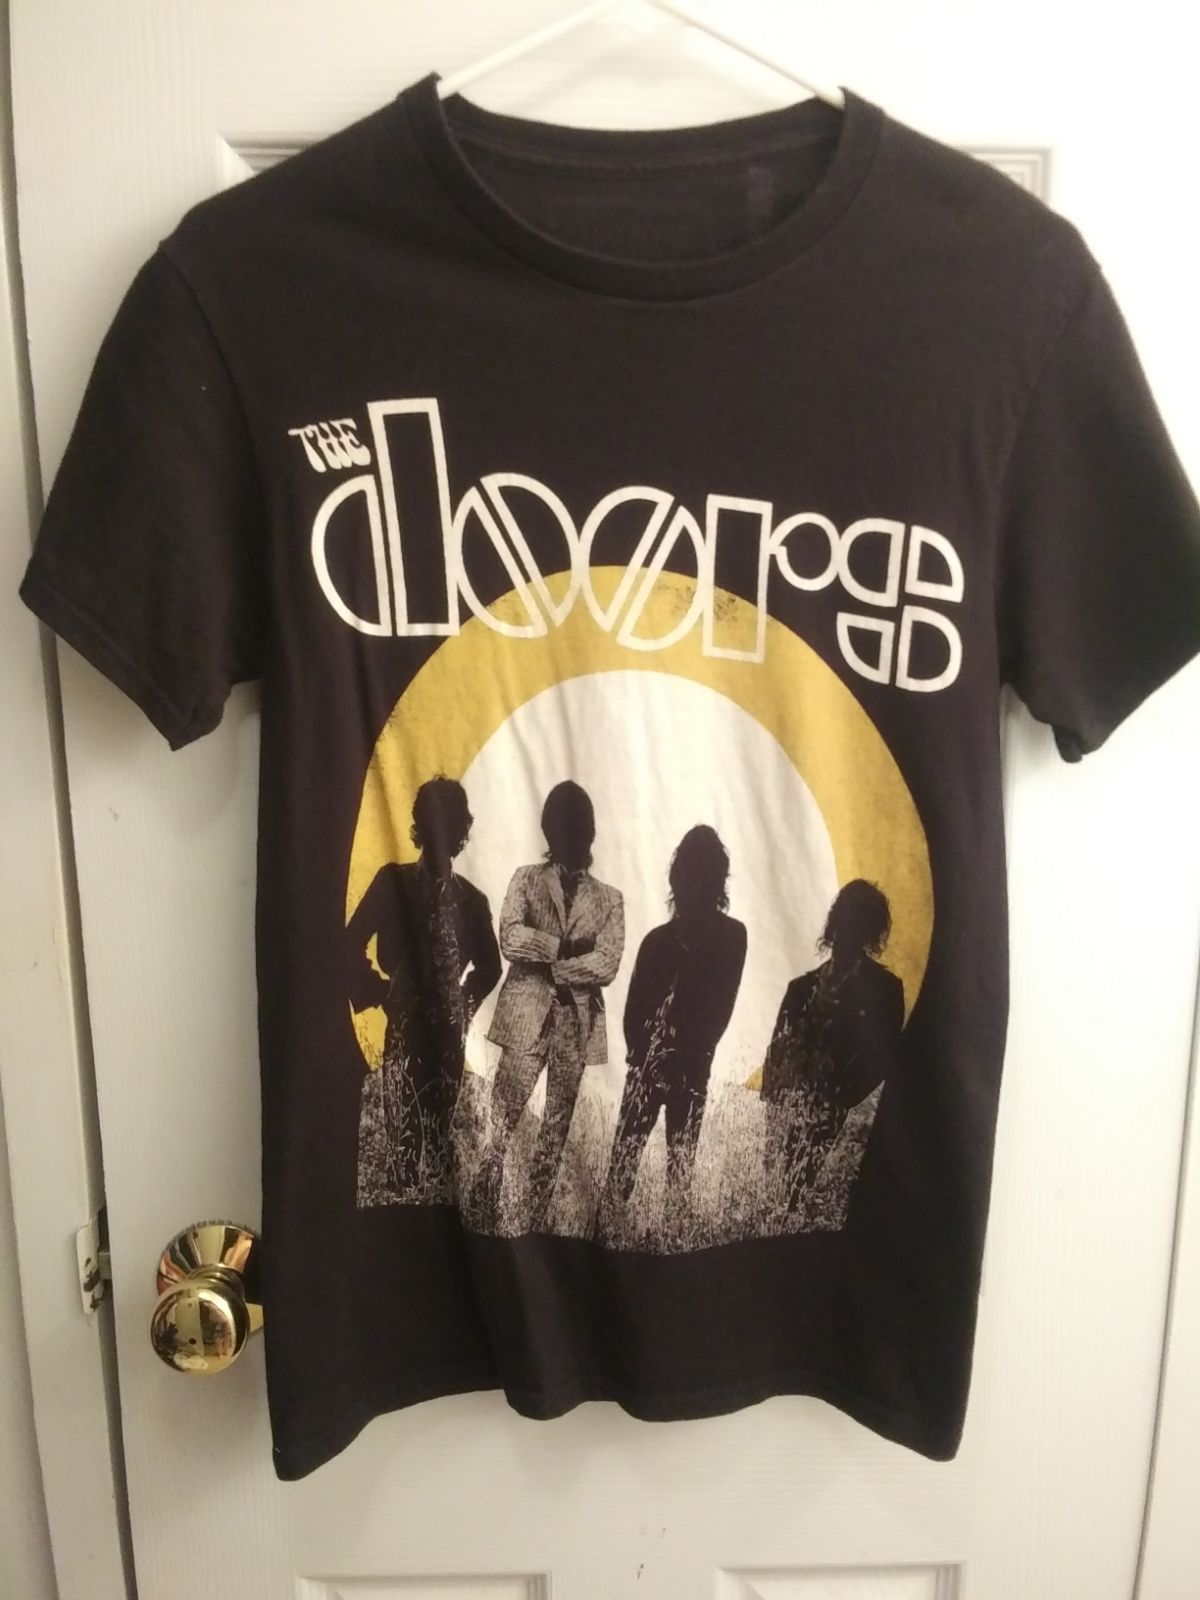 The Doors Waiting For the Sun Tshirt